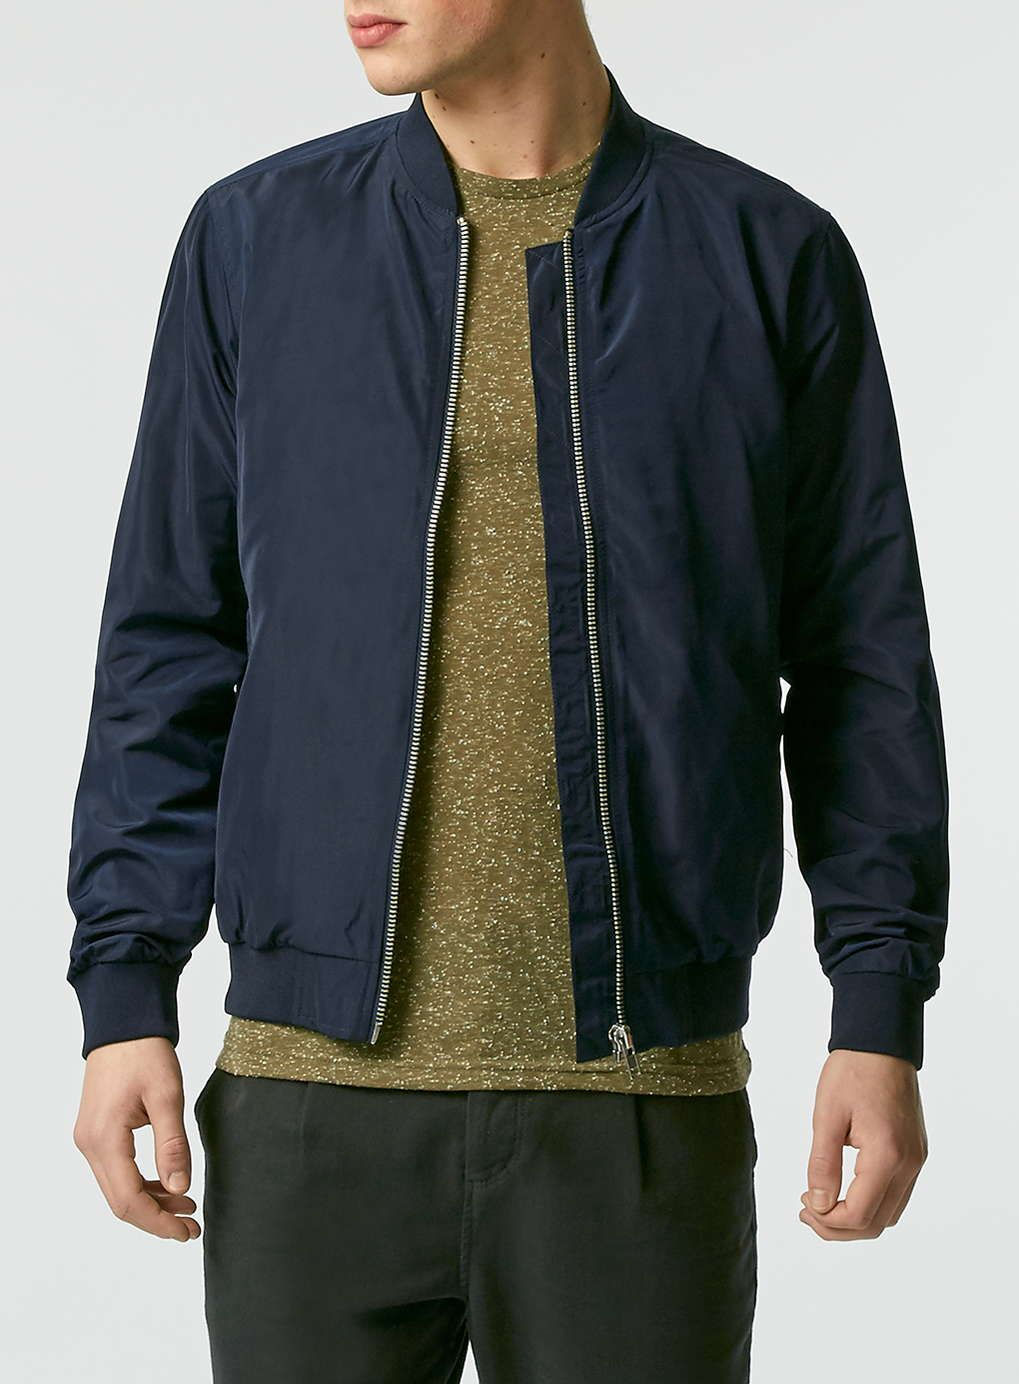 Buy Navy Bomber Jacket at Lodge & Cooper for only $ 86.00 ...